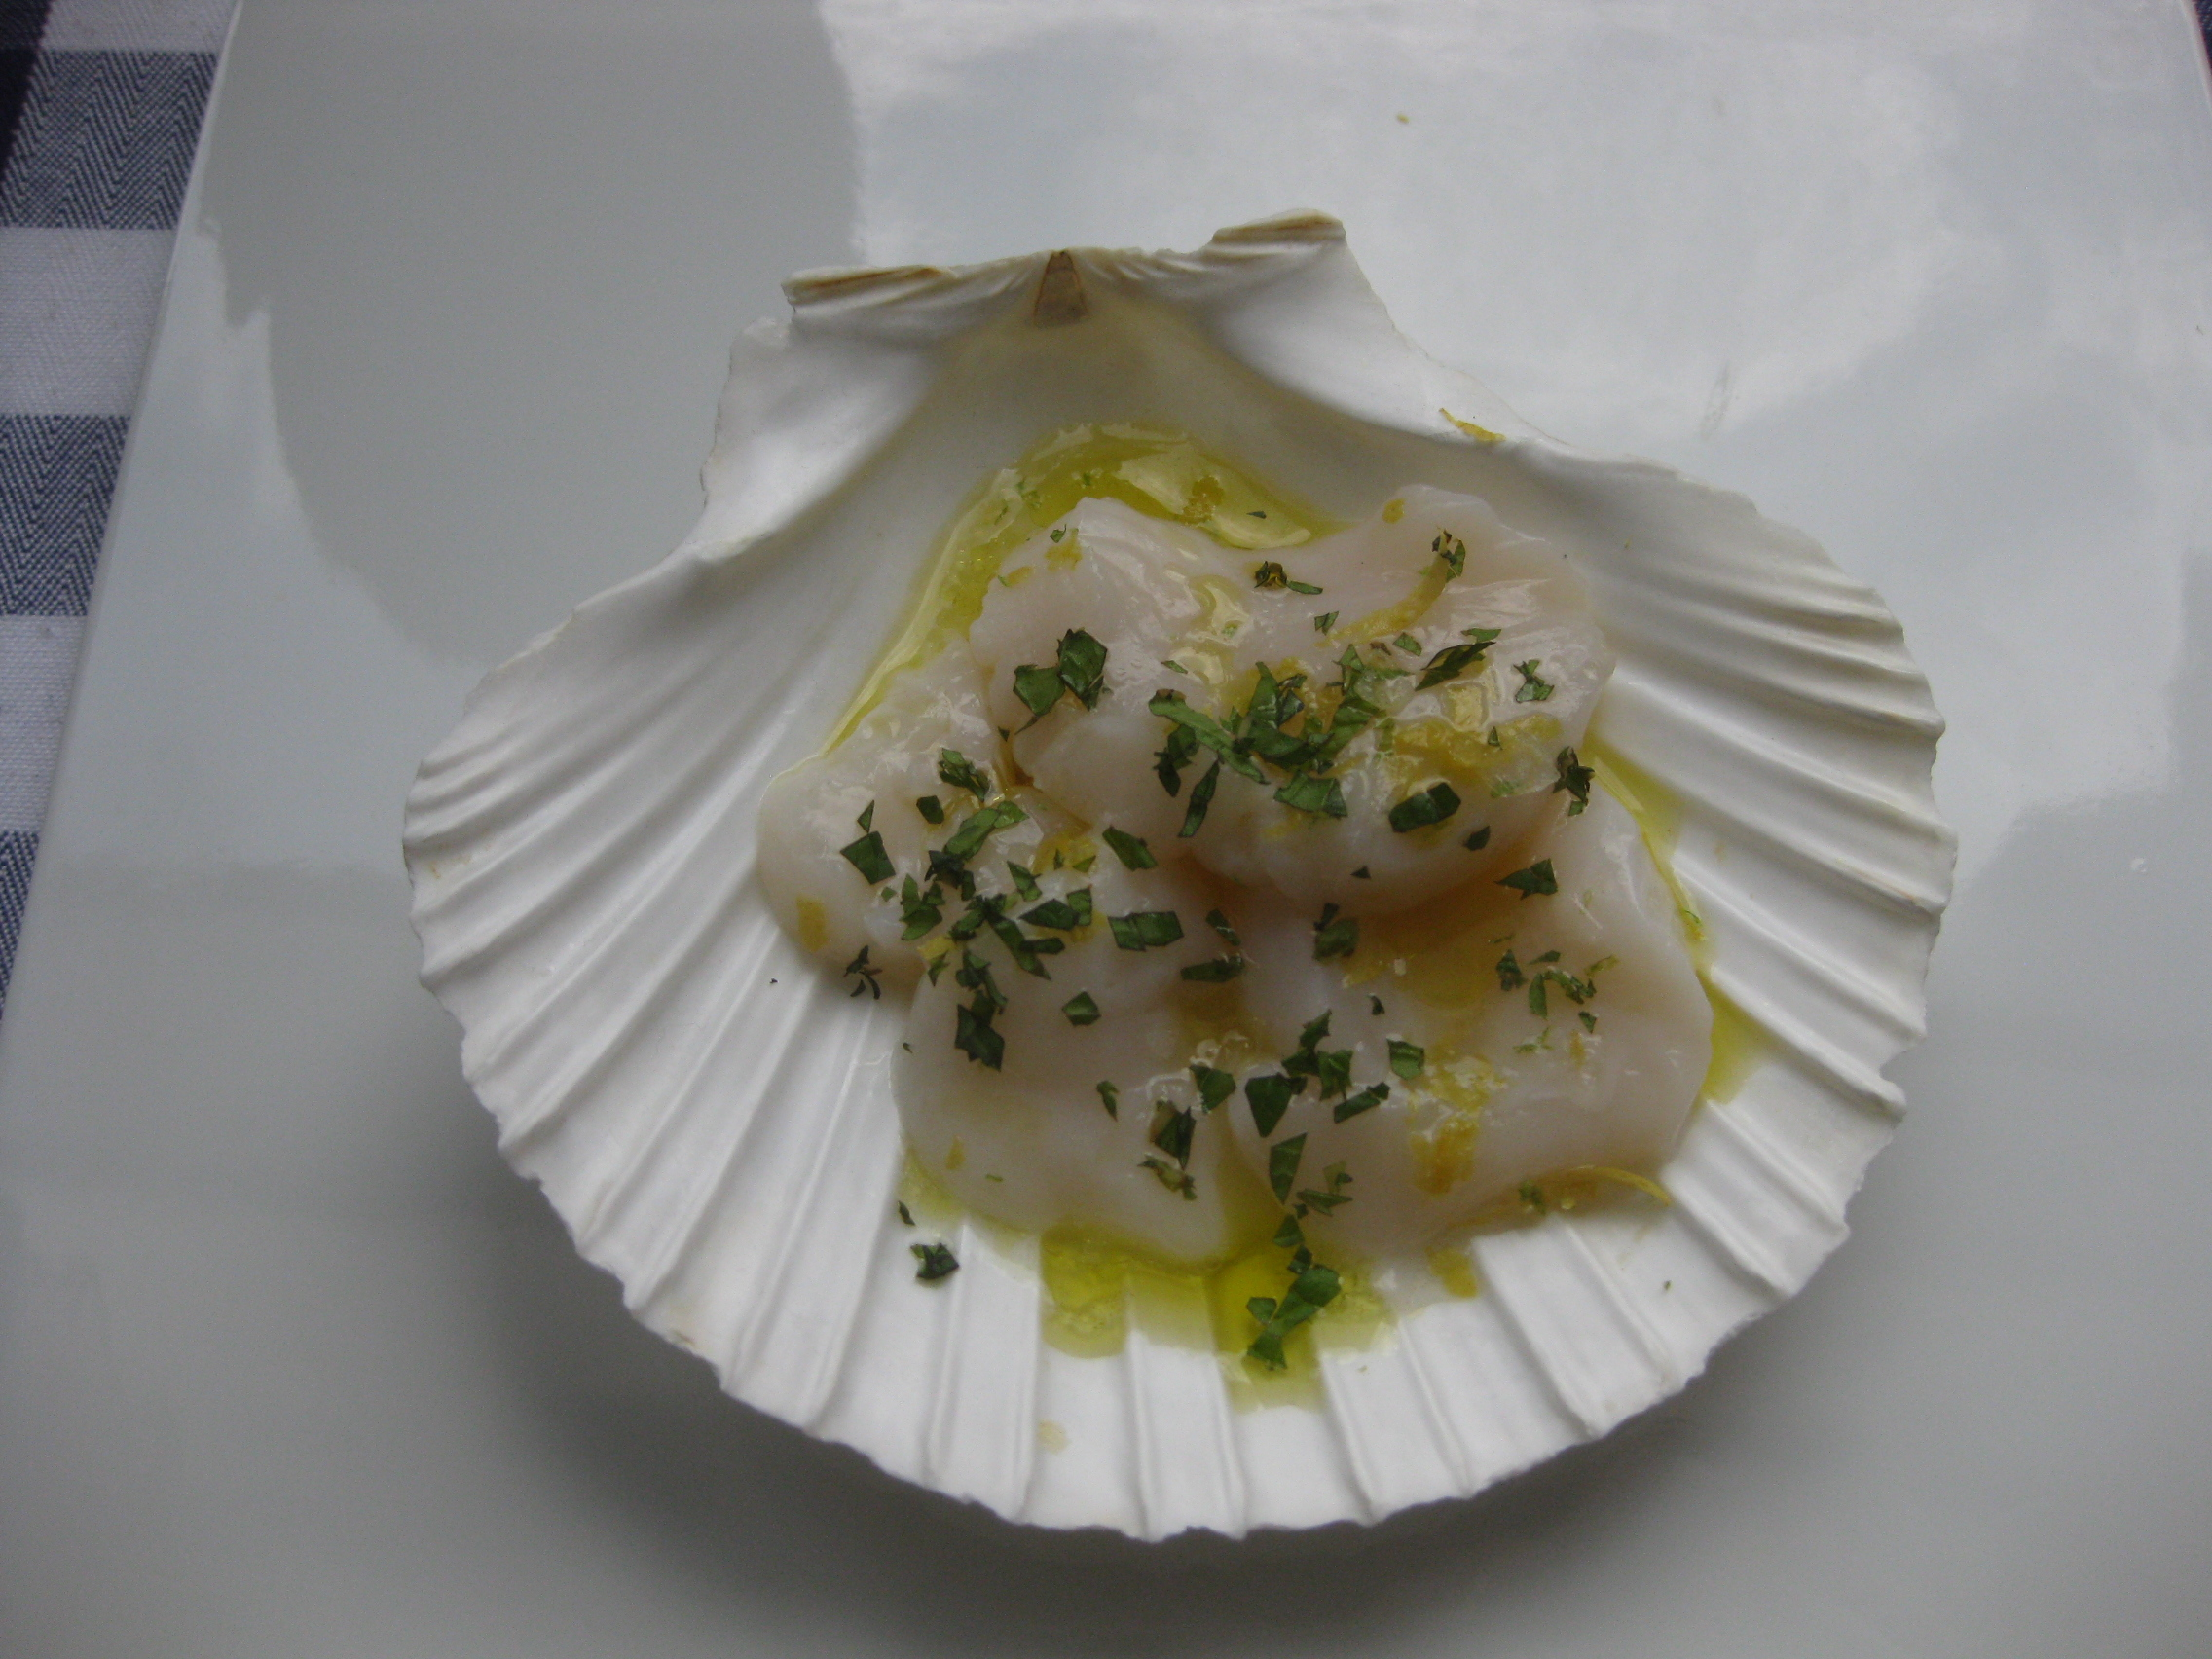 Scallop Crudo with Citrus, Mint and Sea Salt